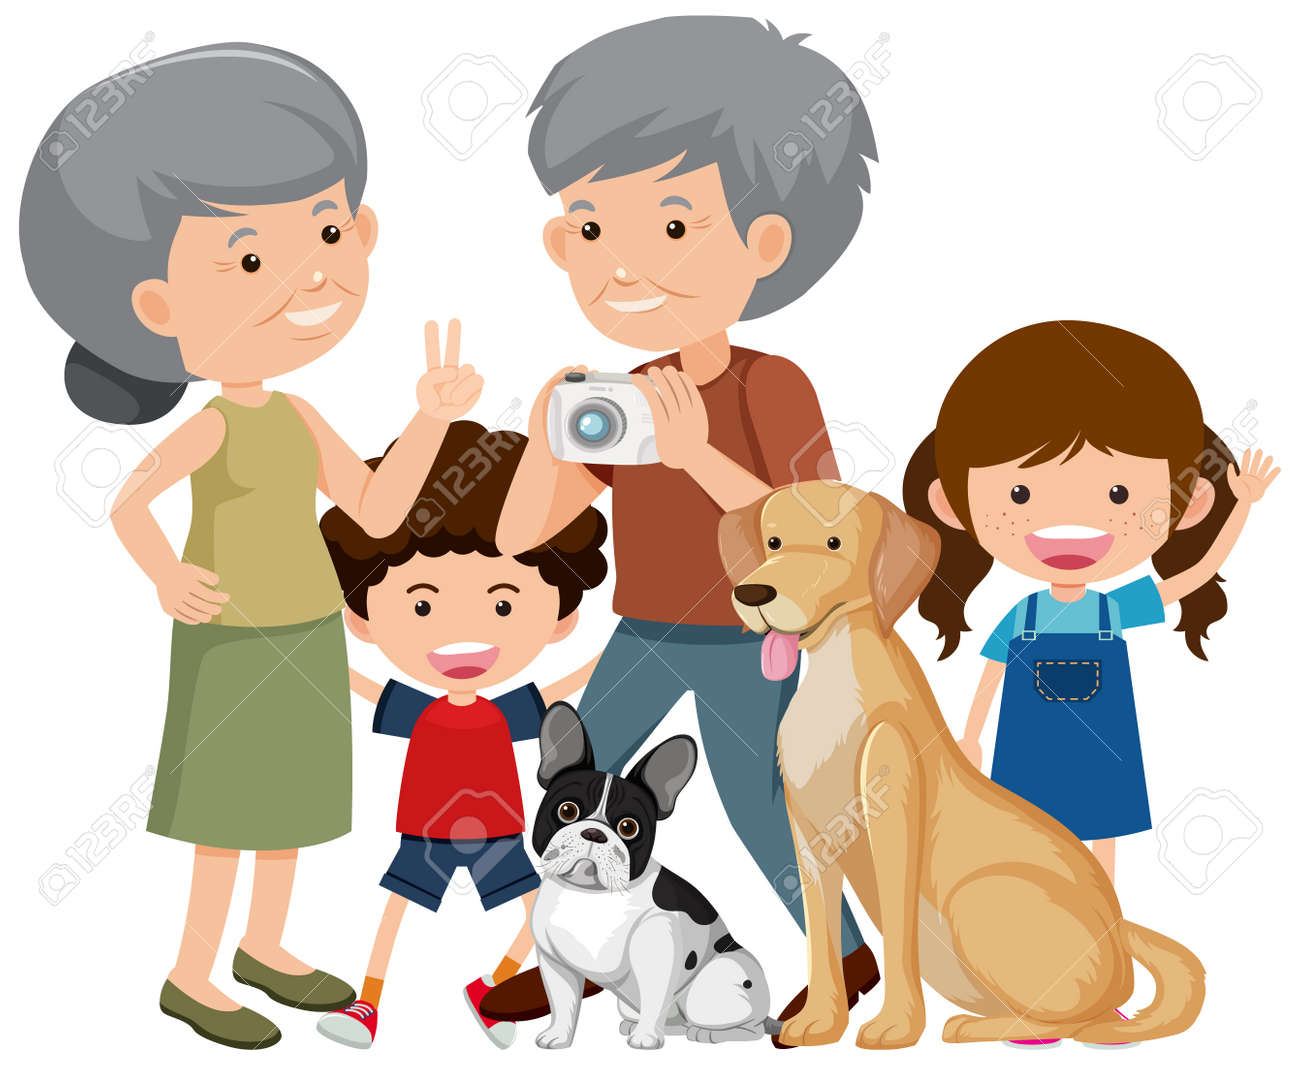 Family members with their pet dog on white background illustration - 159924564